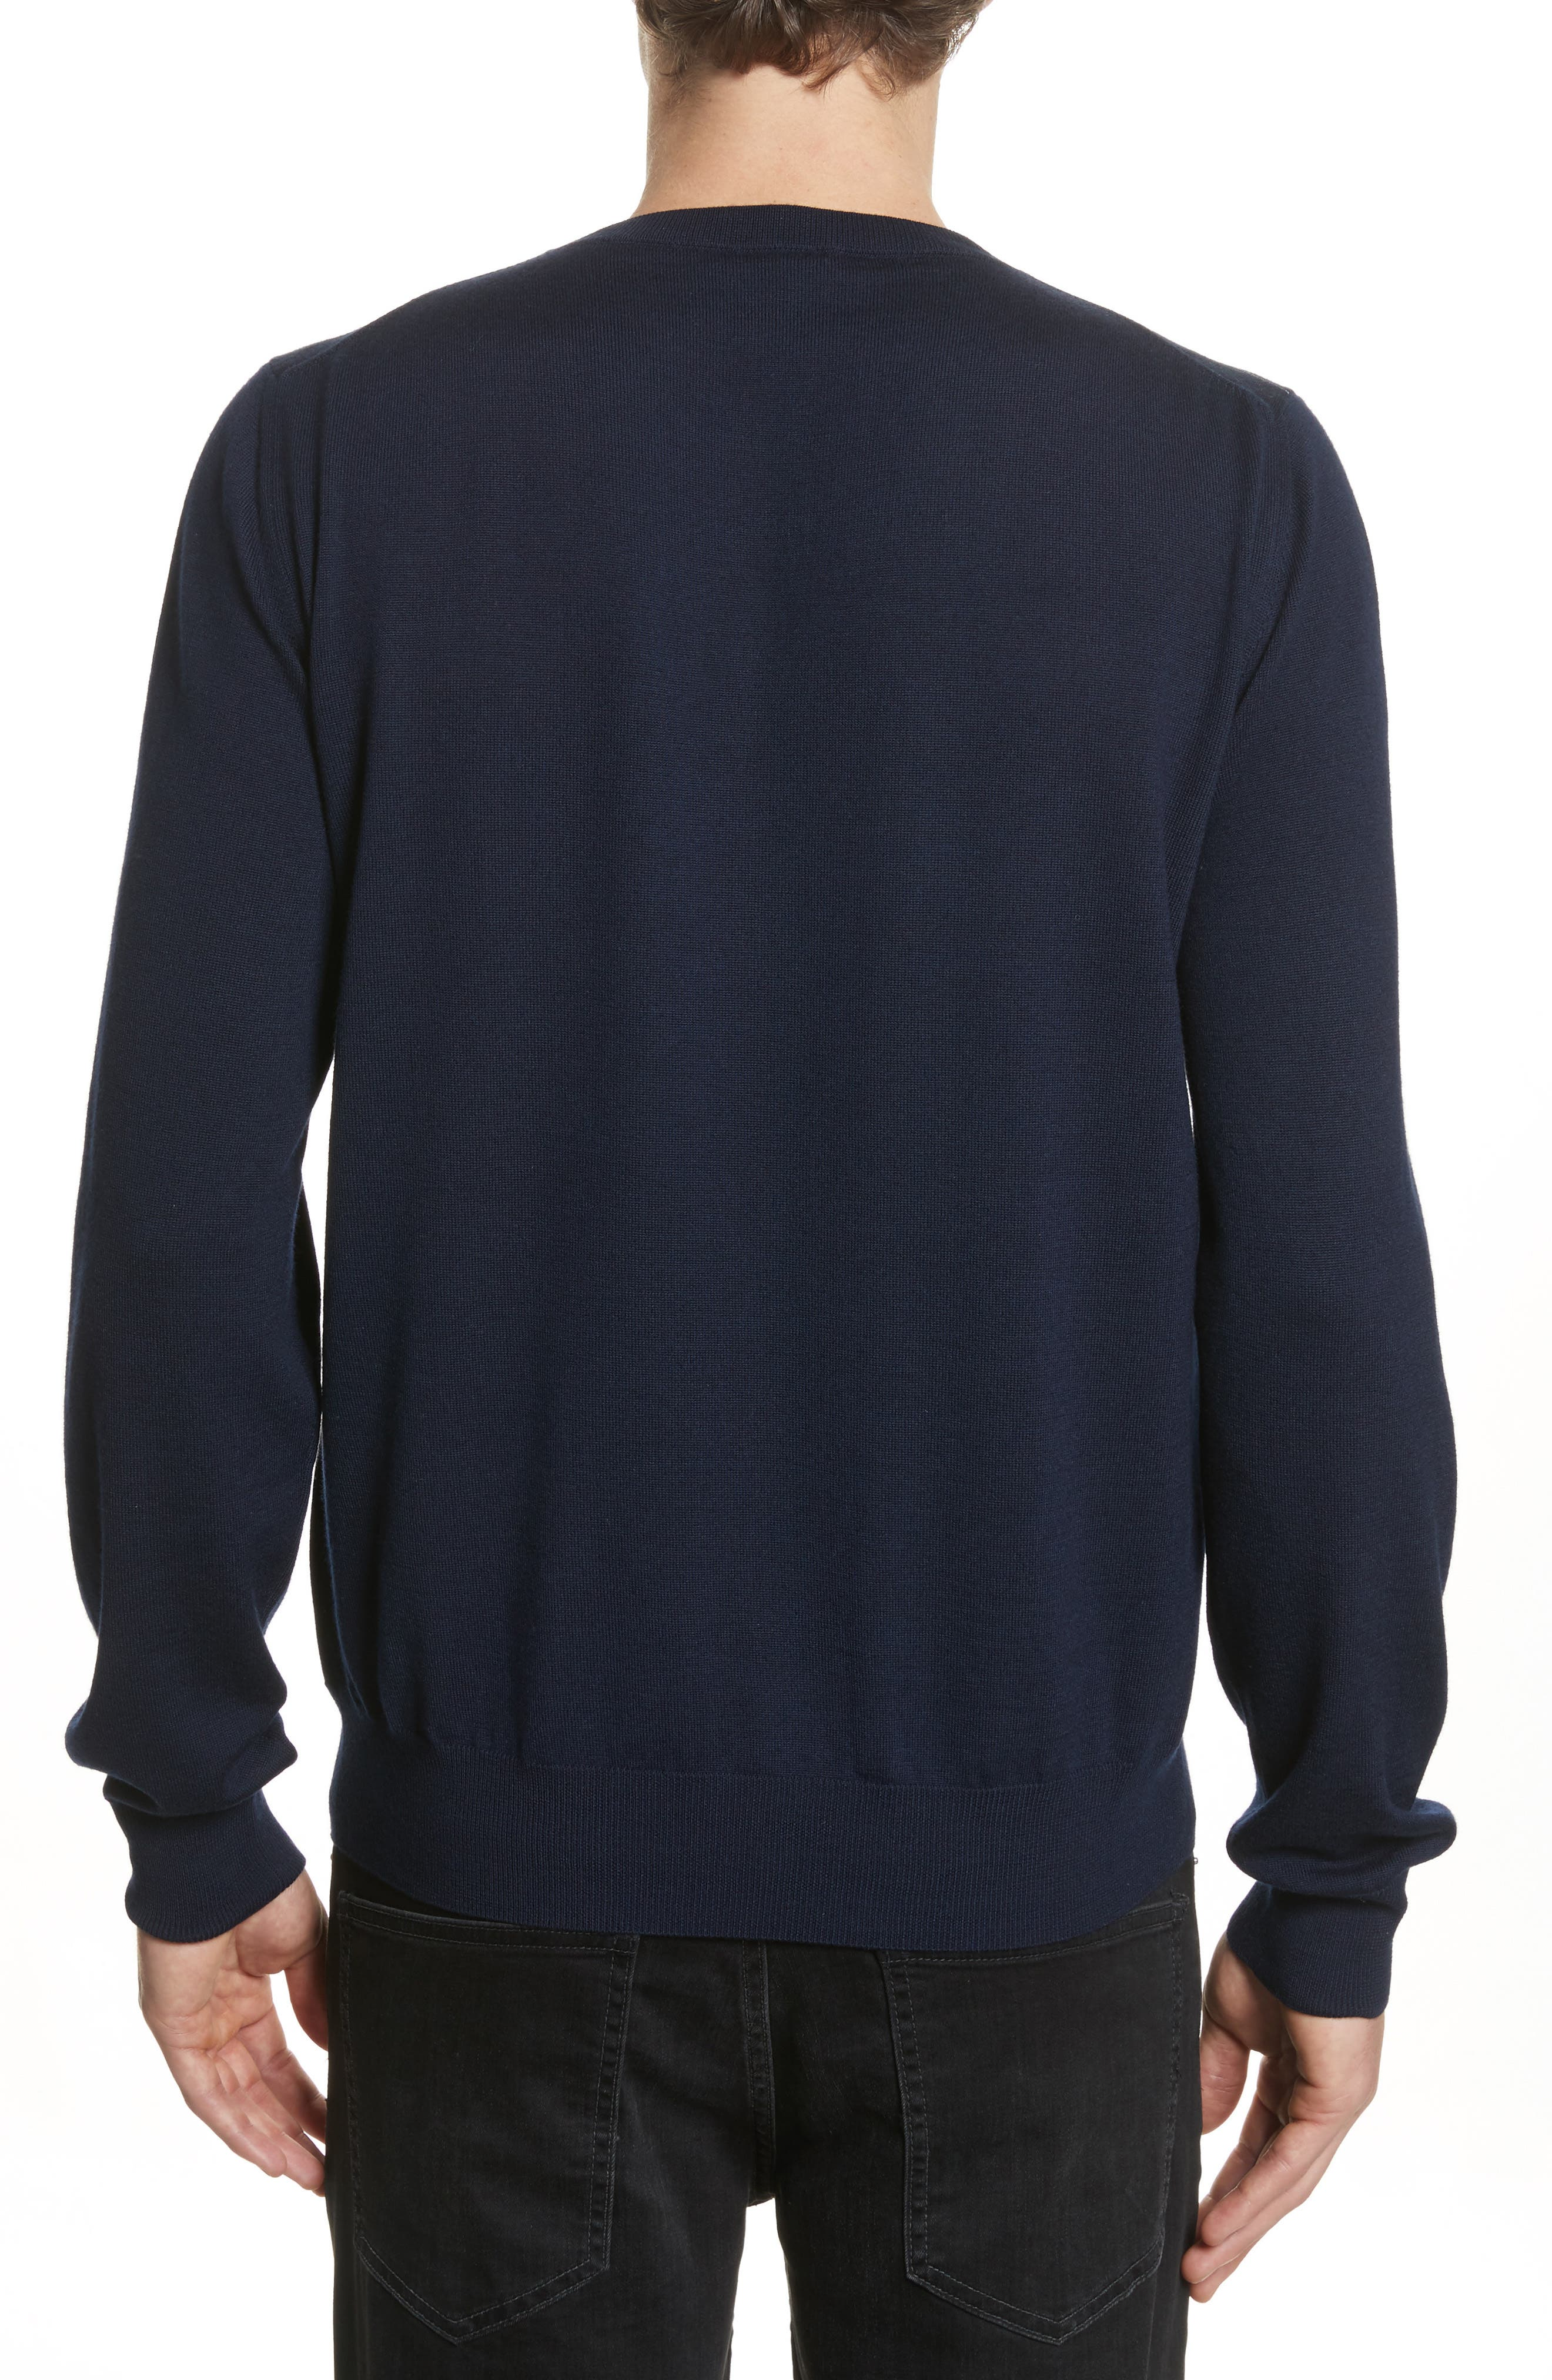 Letters Wool Sweater,                             Alternate thumbnail 2, color,                             Navy Blue